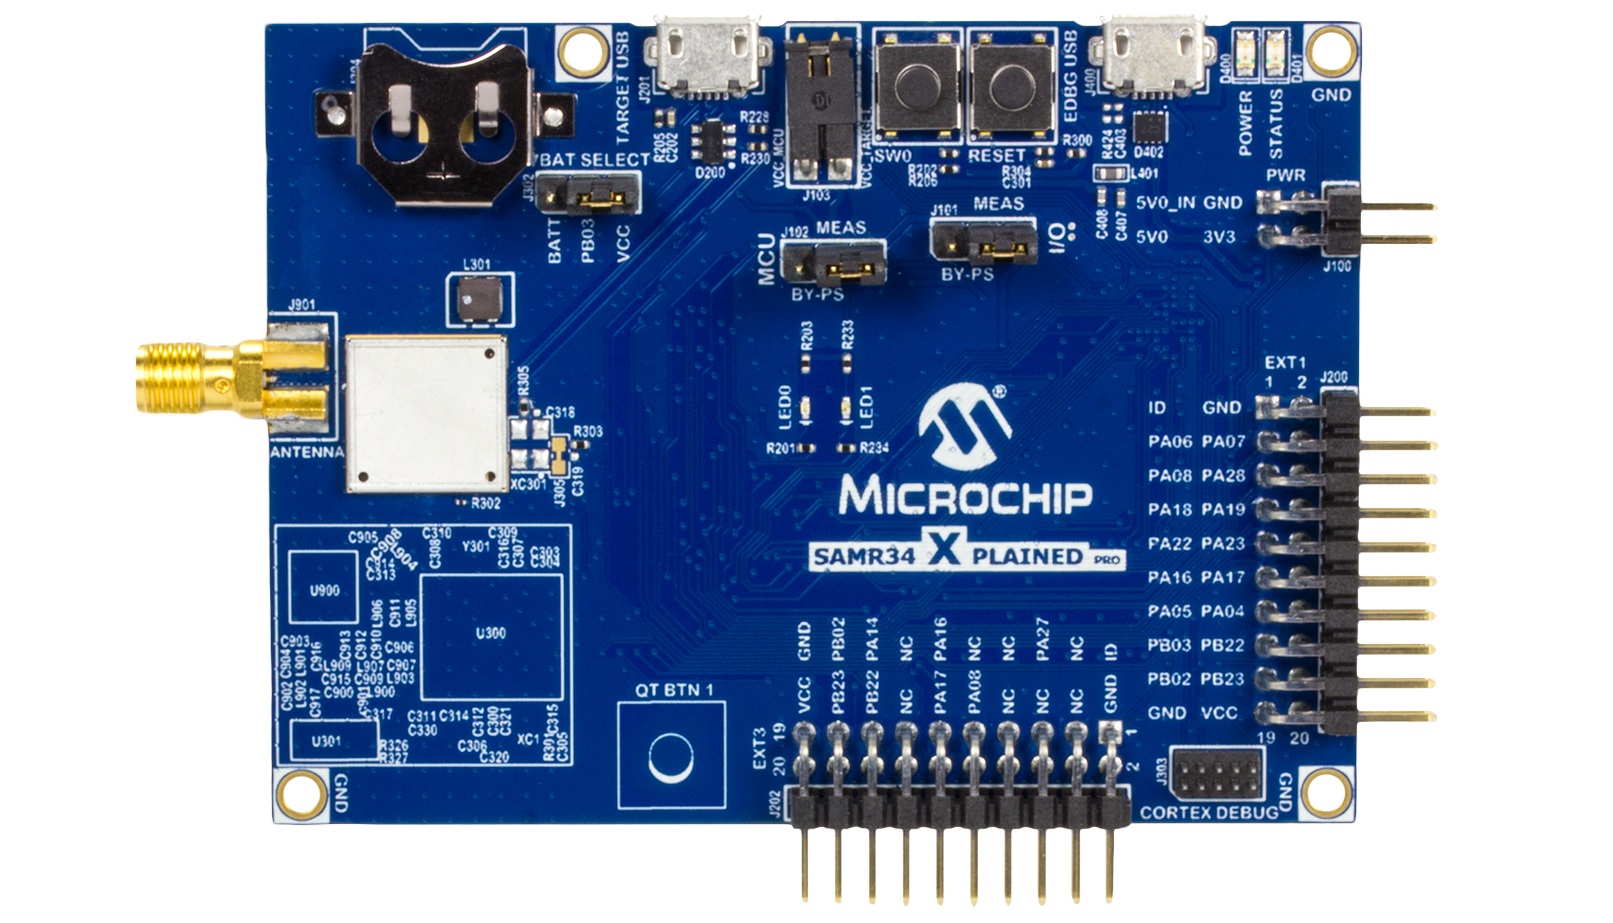 A New Ultra-Low Power LoRa SiP From Microchip - Hackster Blog